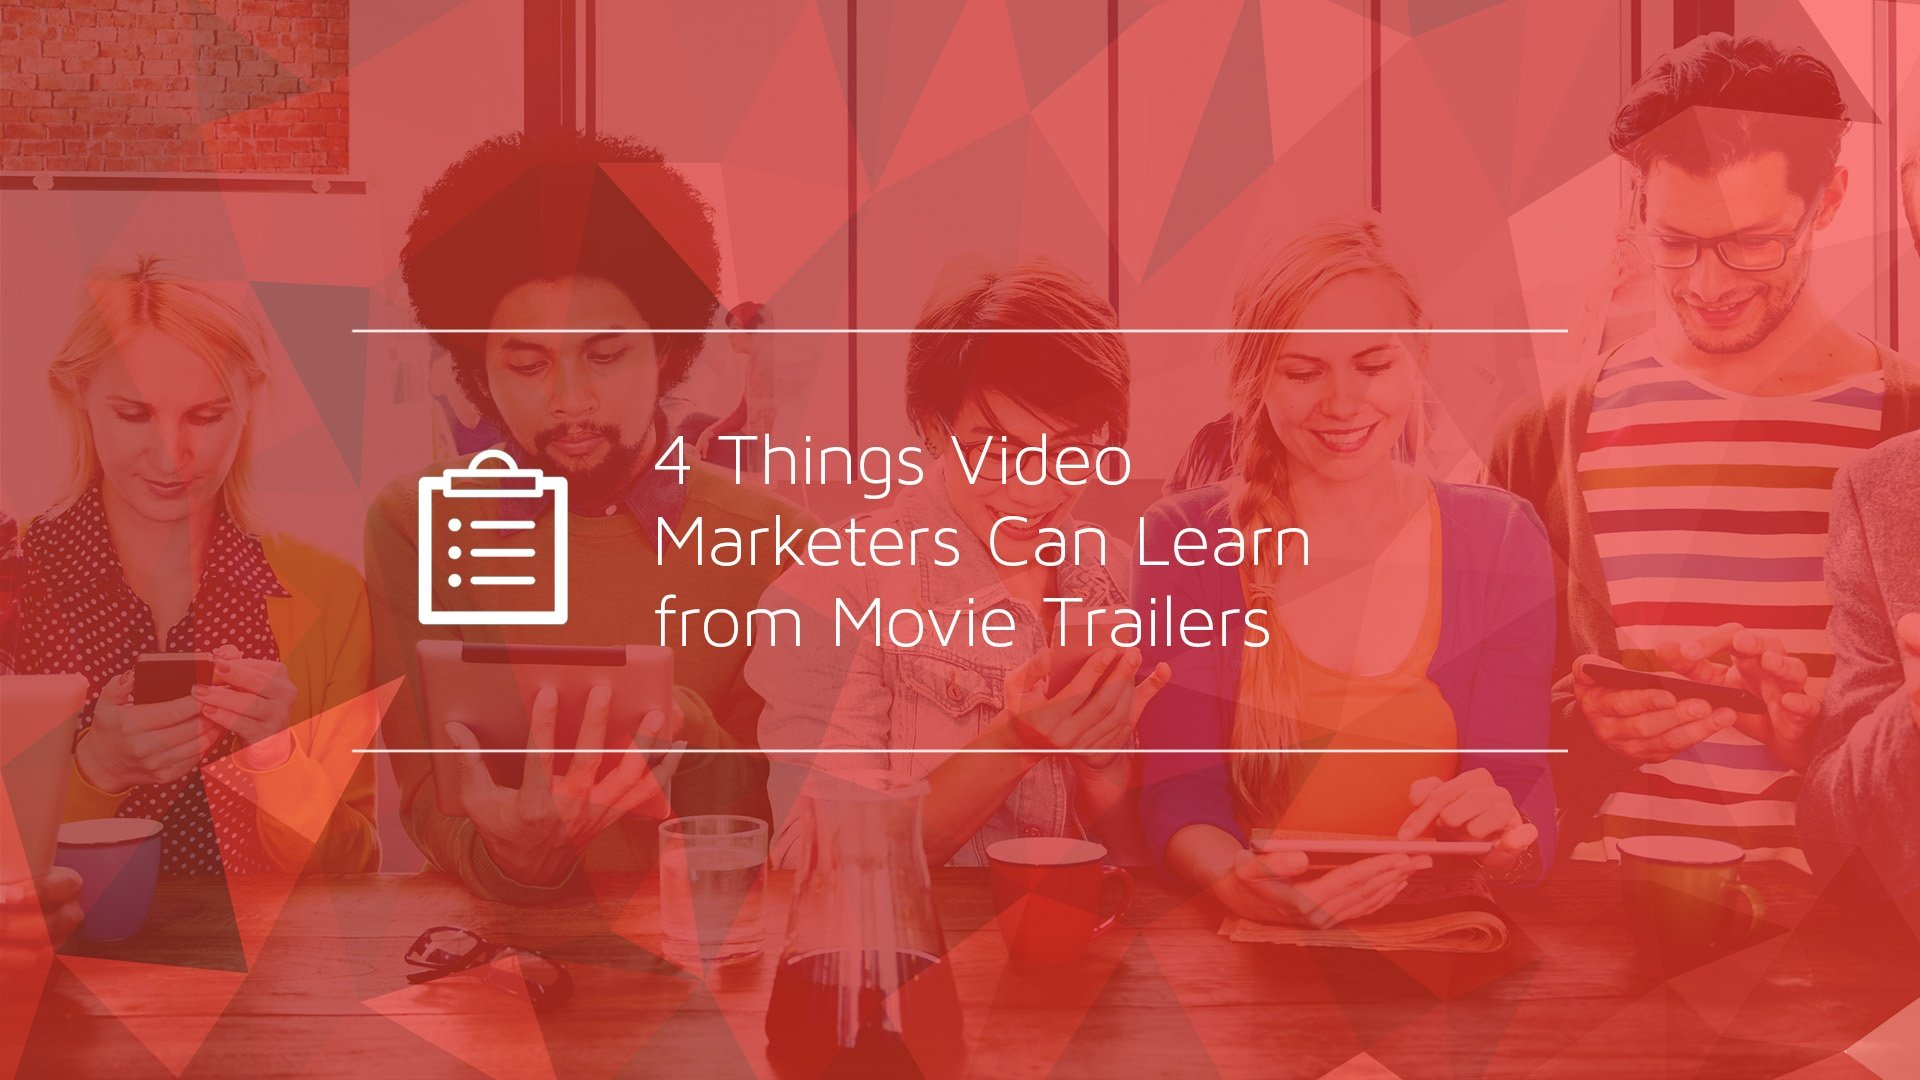 4 Things Video Marketers Can Learn from Movie Trailers